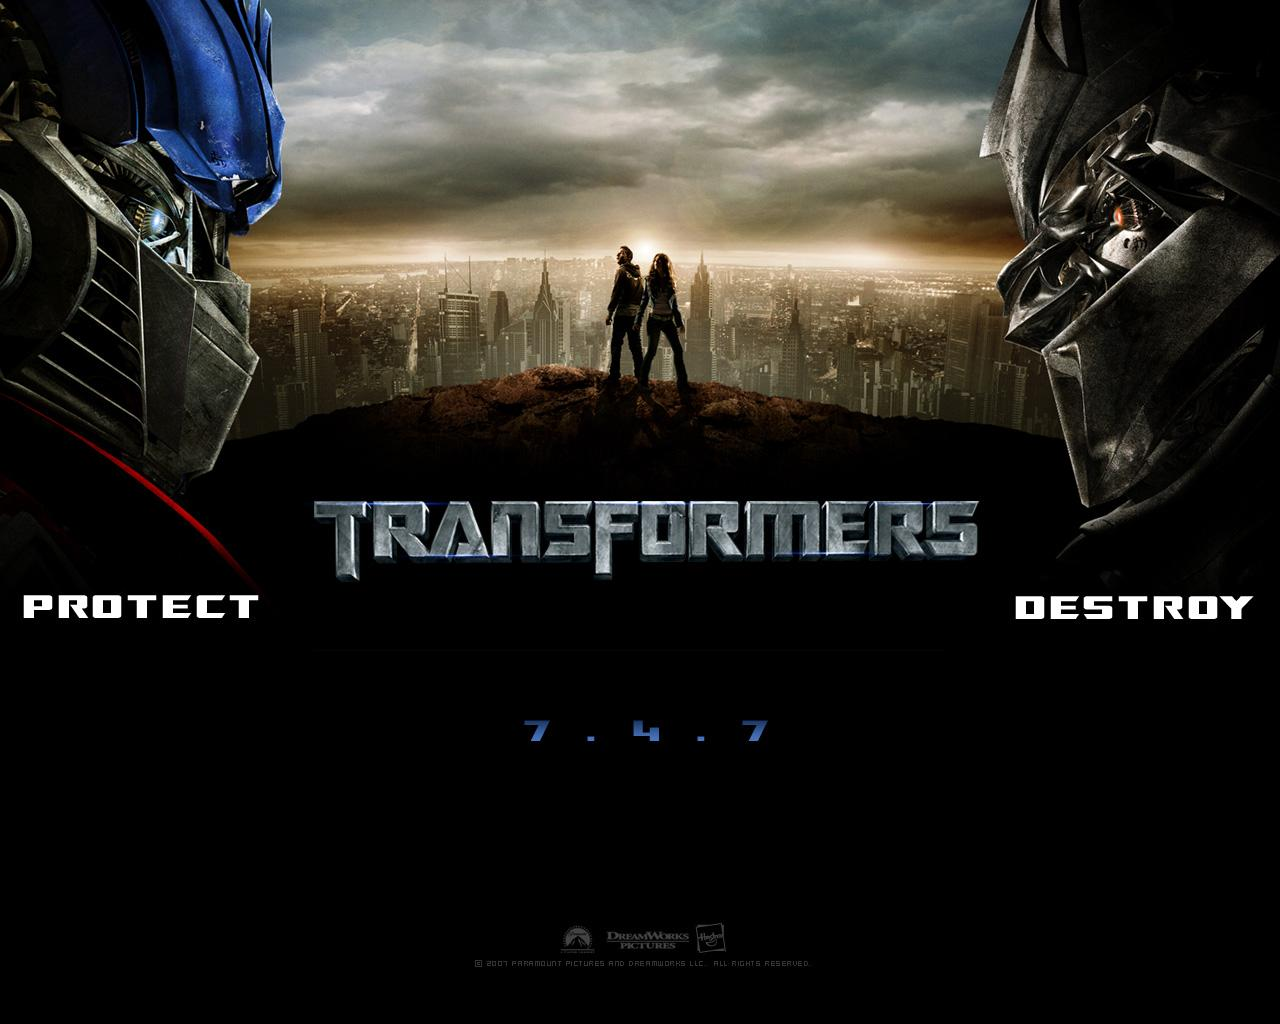 http://3.bp.blogspot.com/-m8s8wSyCpNE/UNdd_FGWoTI/AAAAAAAABNo/nZrXj5lXKhk/s1600/transformers-the-movie-poster-desktop-background-w1.jpg